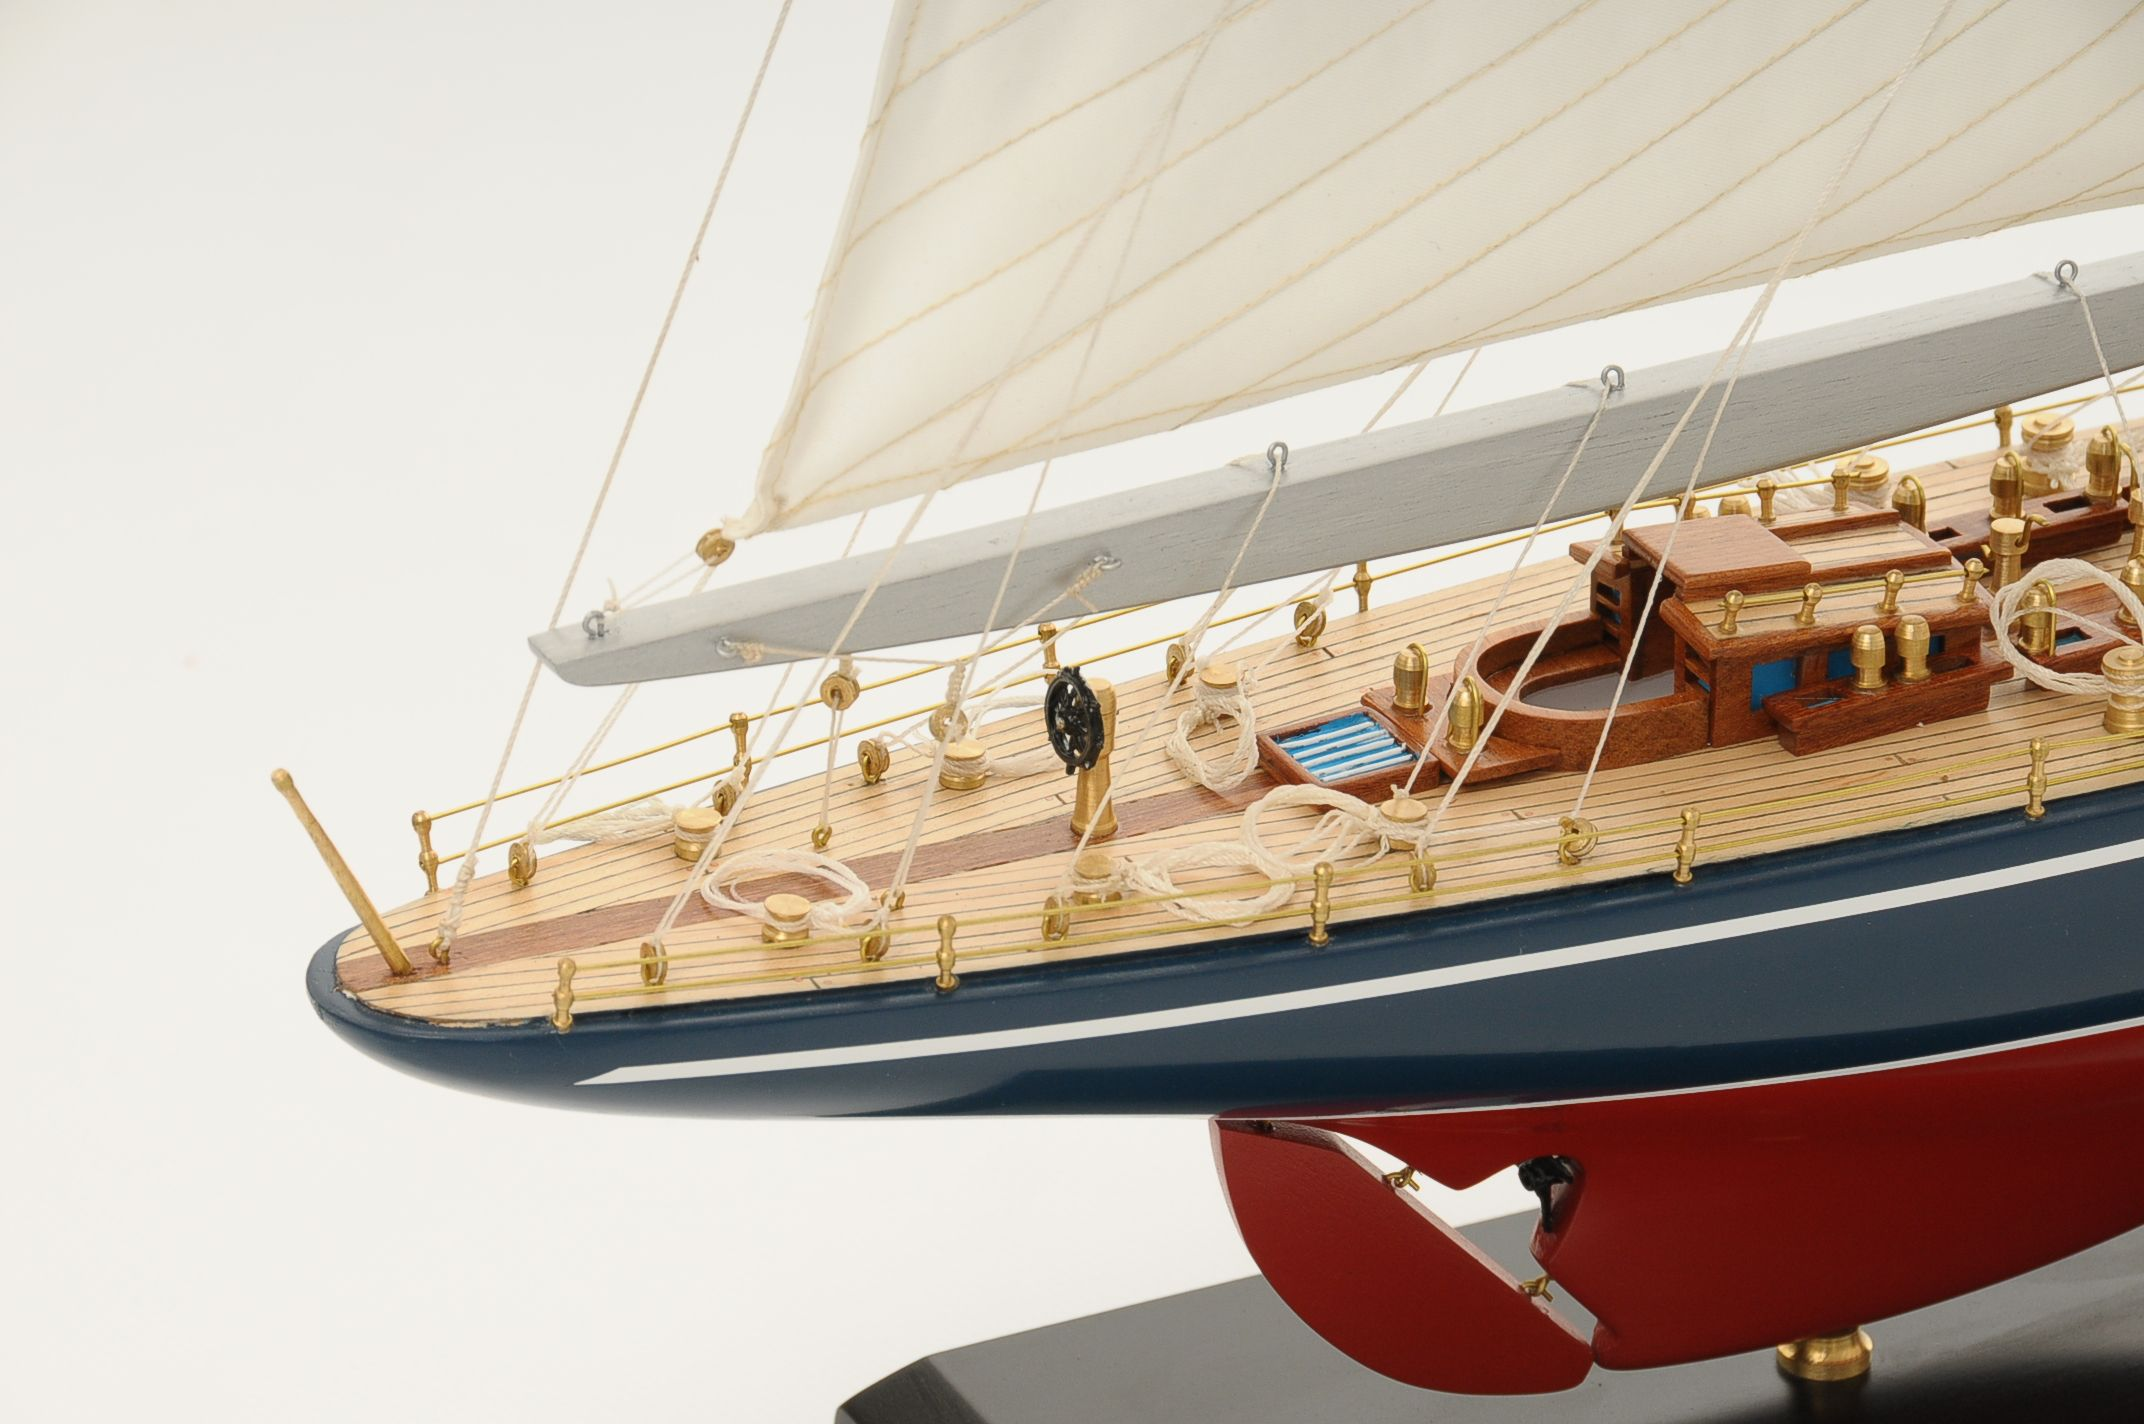 472-8248-Endeavour-Model-Yacht-Superior-Range